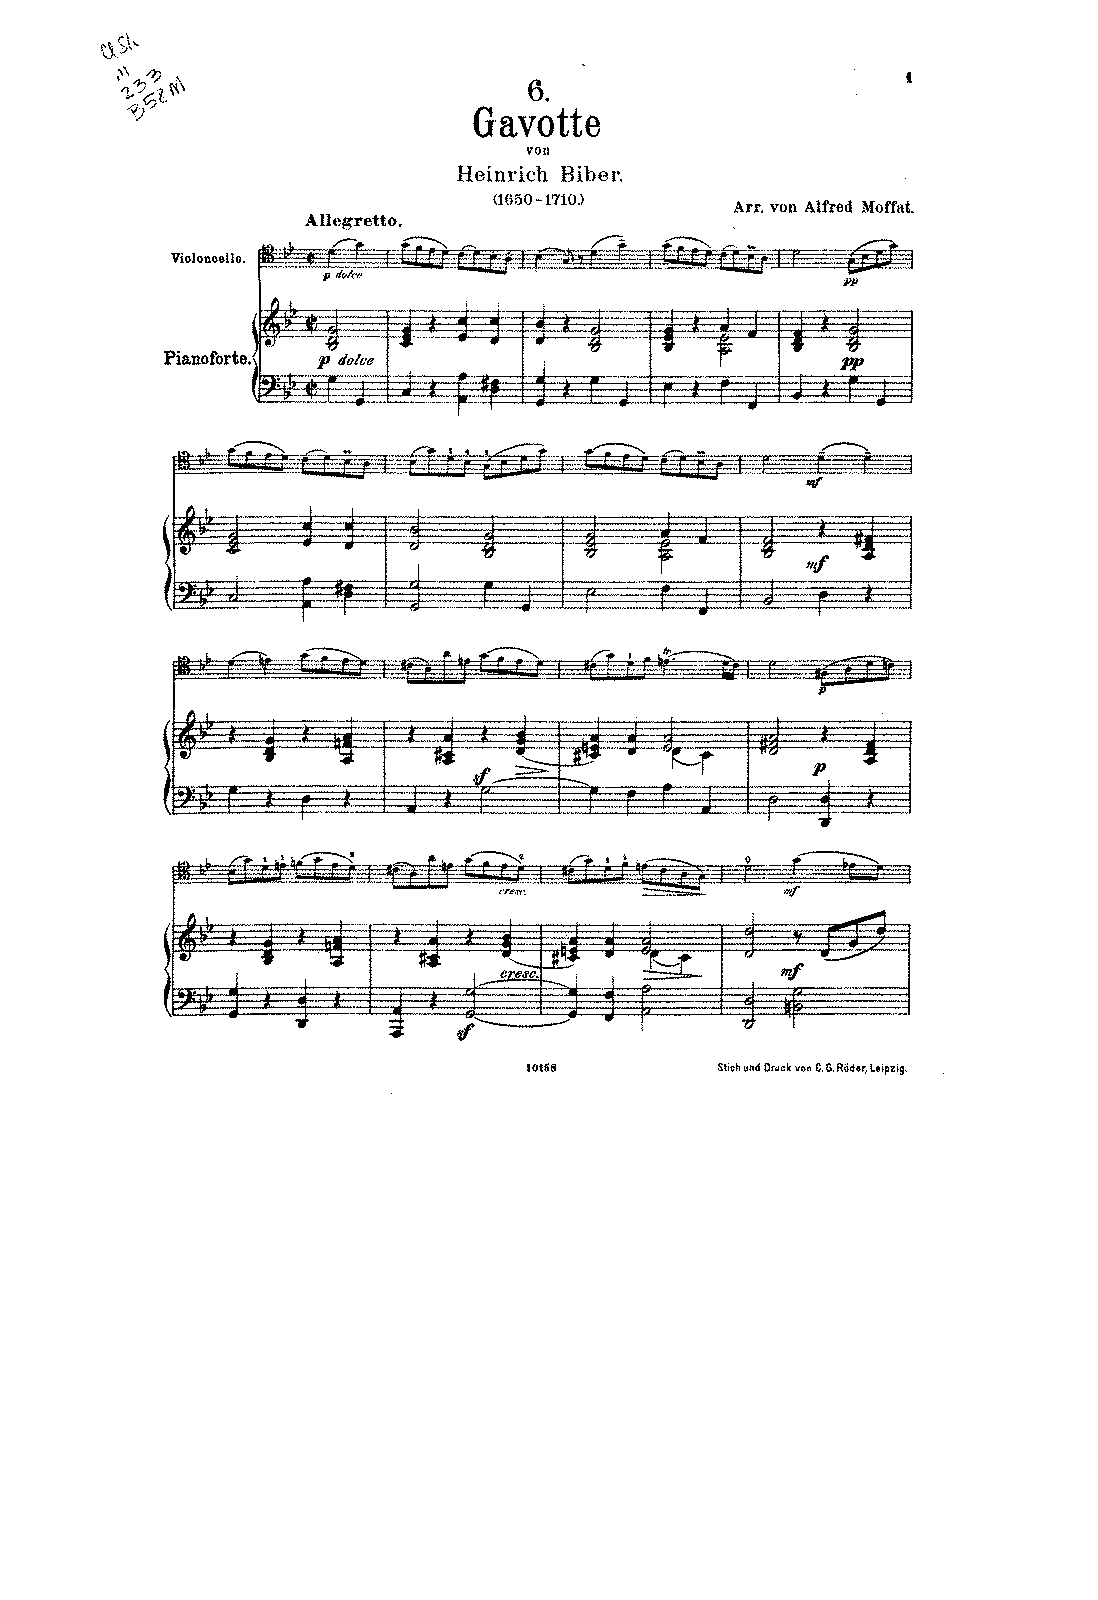 PMLP101360-Biber - Gavotte in G minor for Cello and Piano (Moffat) score.pdf